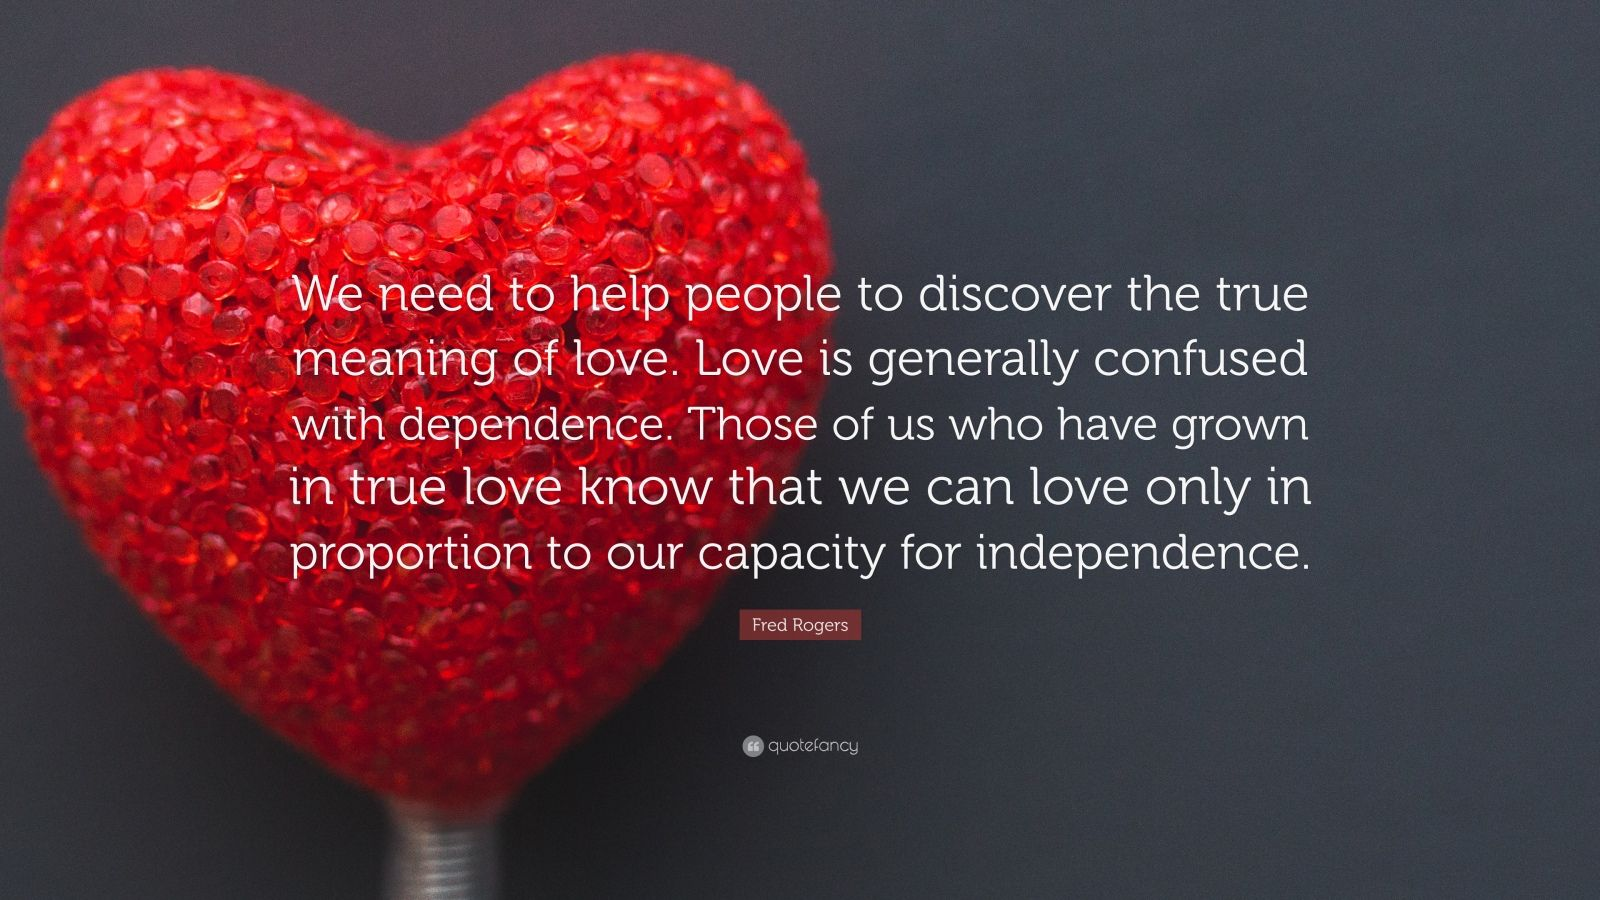 Fred Rogers Quote We Need To Help People To Discover The True Meaning Of Love Love Is Generally Confused With Dependence Those Of Us Who 10 Wallpapers Quotefancy